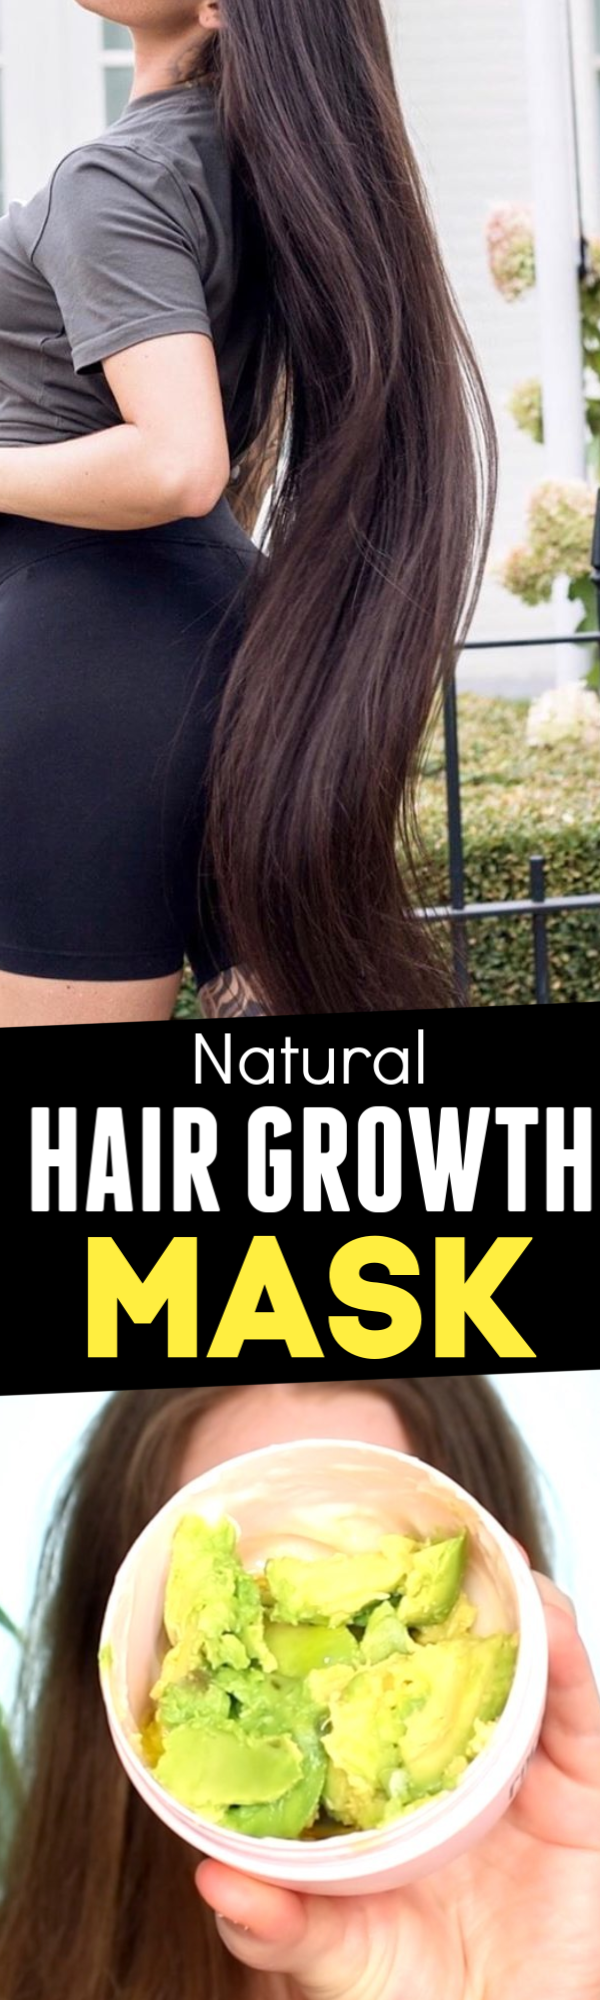 Overnight hair growth mask, increase hair length by 3 inches in just 1 month #fasterhairgrowth